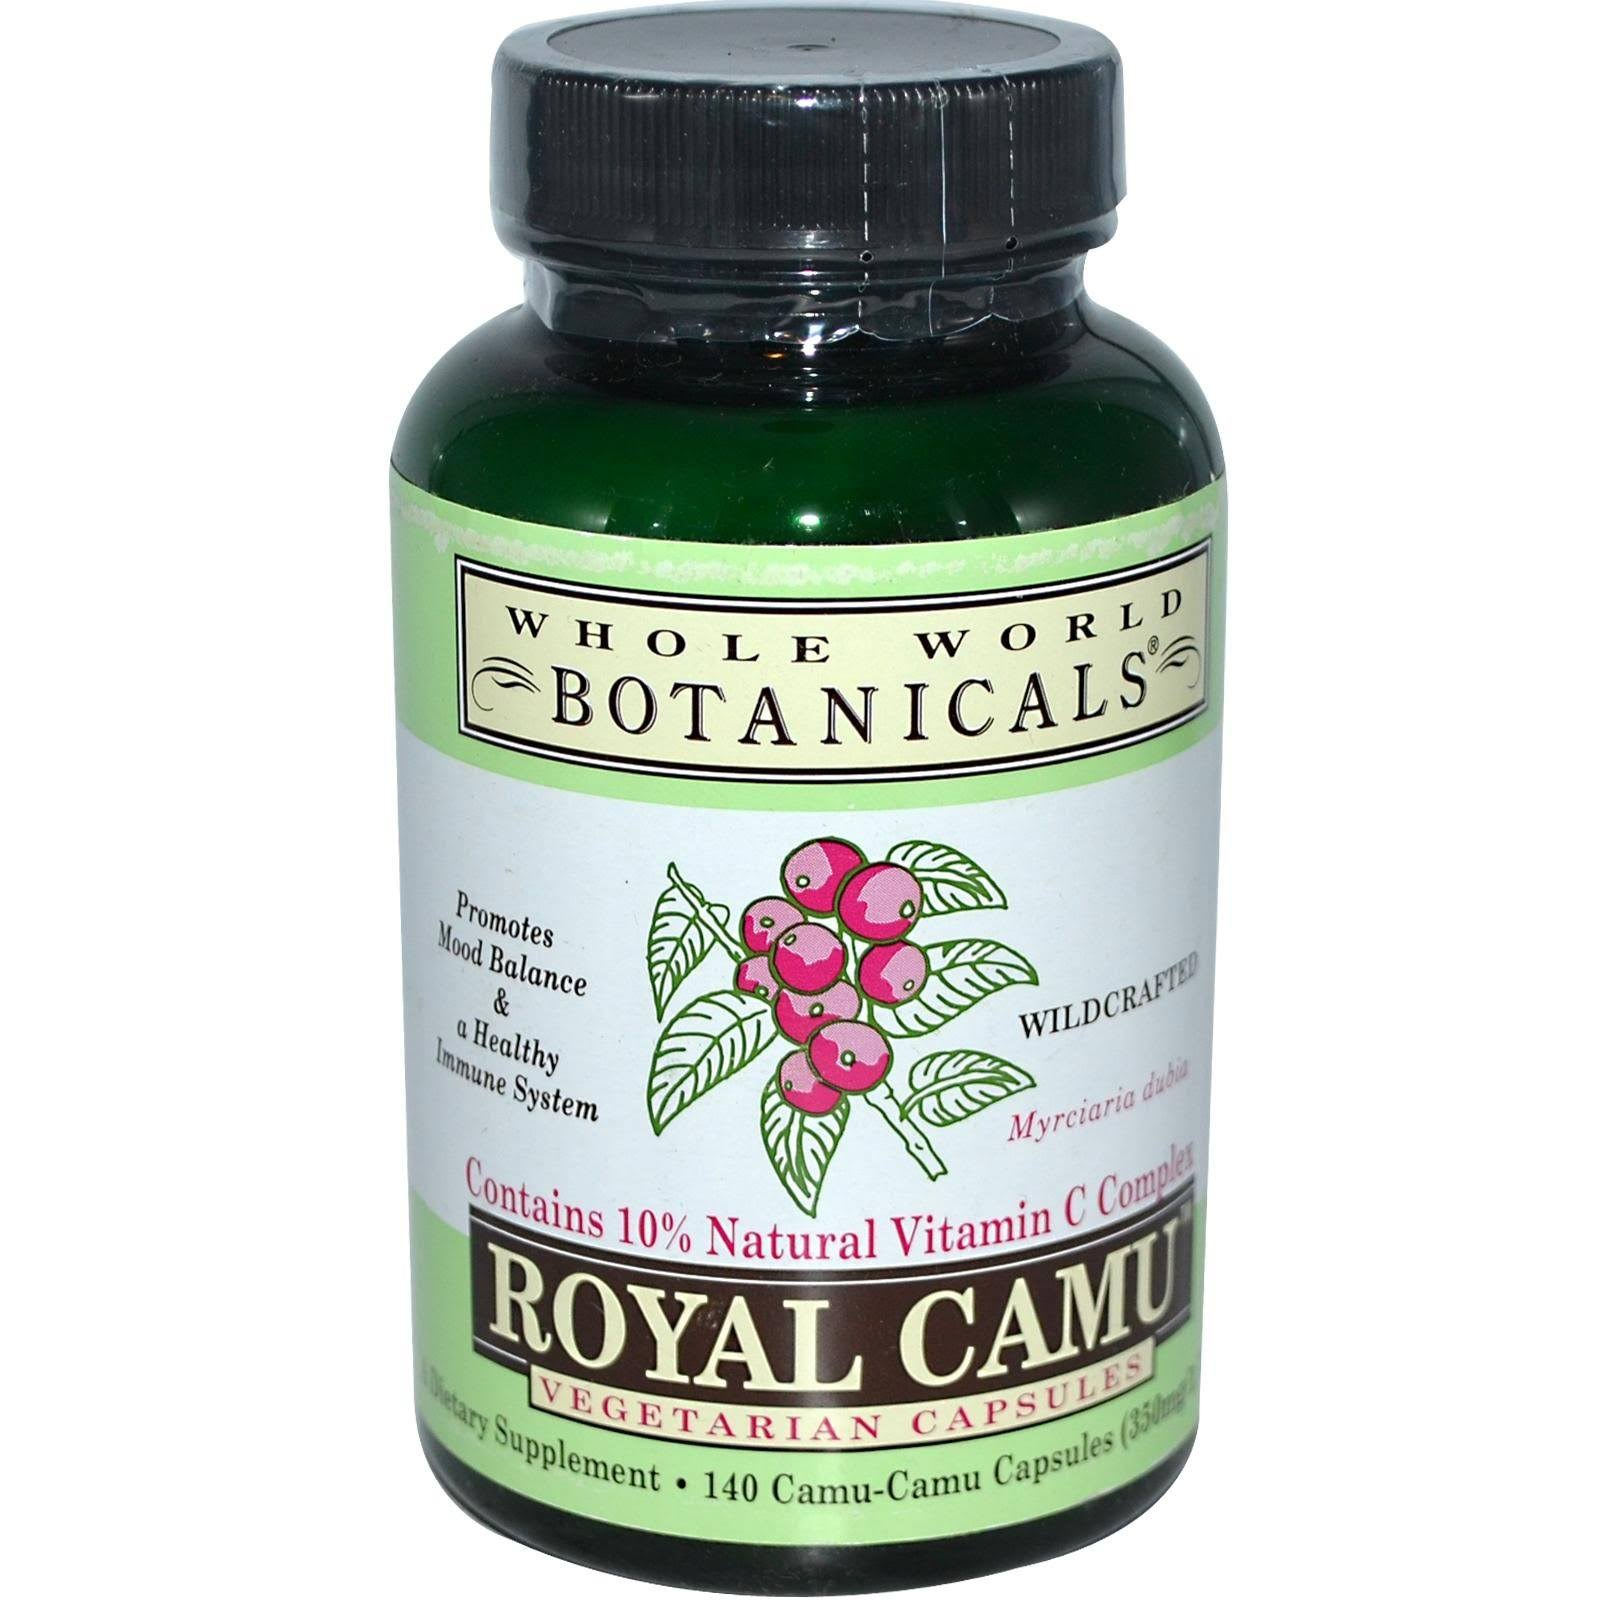 Whole World Botanicals Royal Camu - 140 Vegetarian Capsules